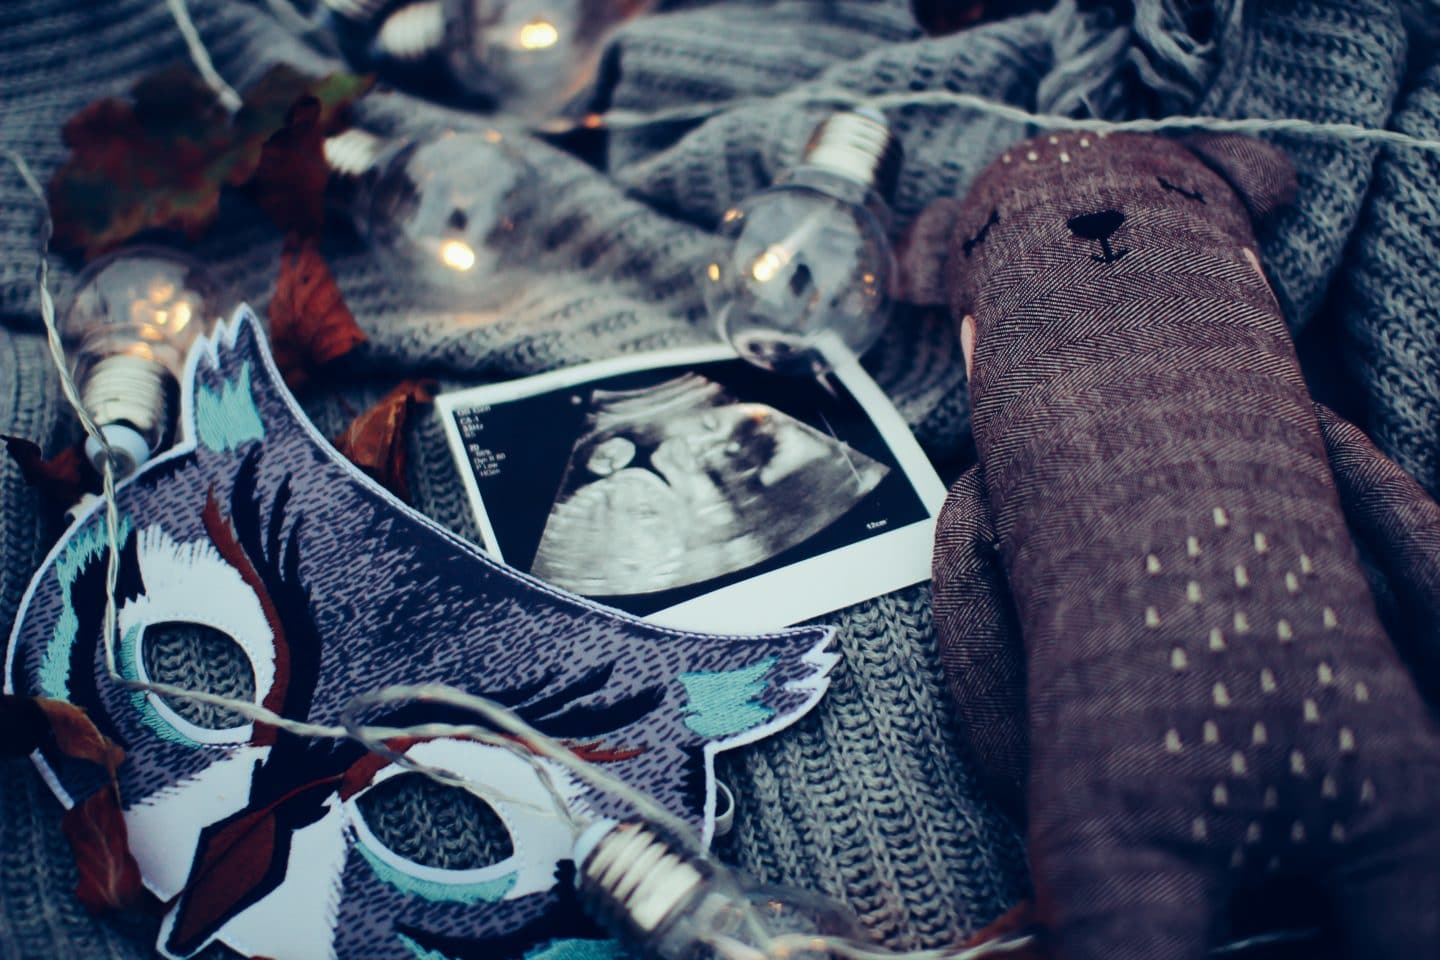 Passively Pro-Choice: How Sin Kills the Pro-Life Mission